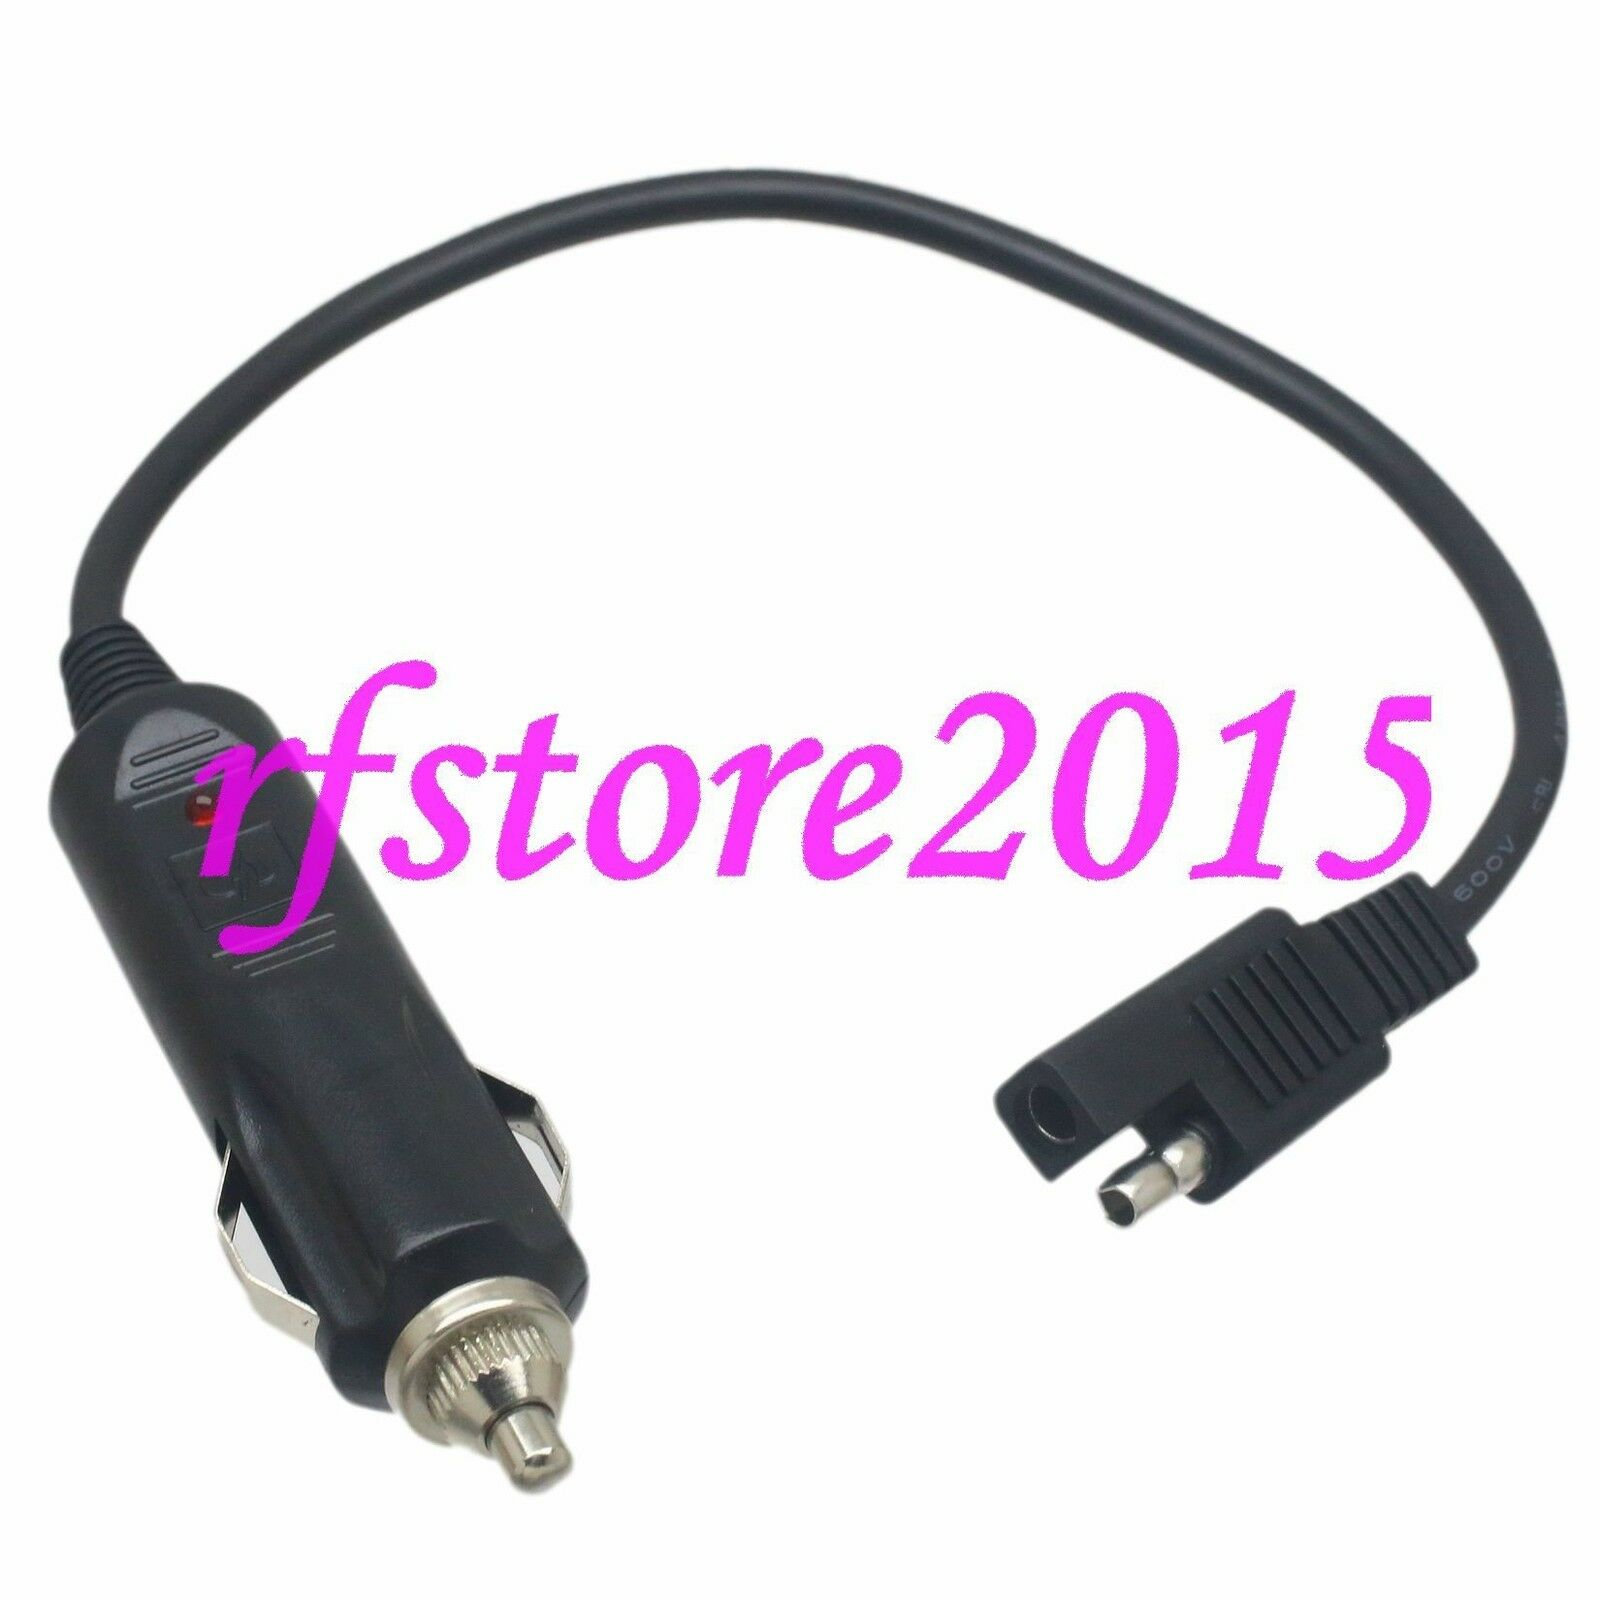 Sae 2 Pole Flat Plug To Cigarette Lighter Socket 18awg 1ft Wire For Wiring A 1 Of 4free Shipping